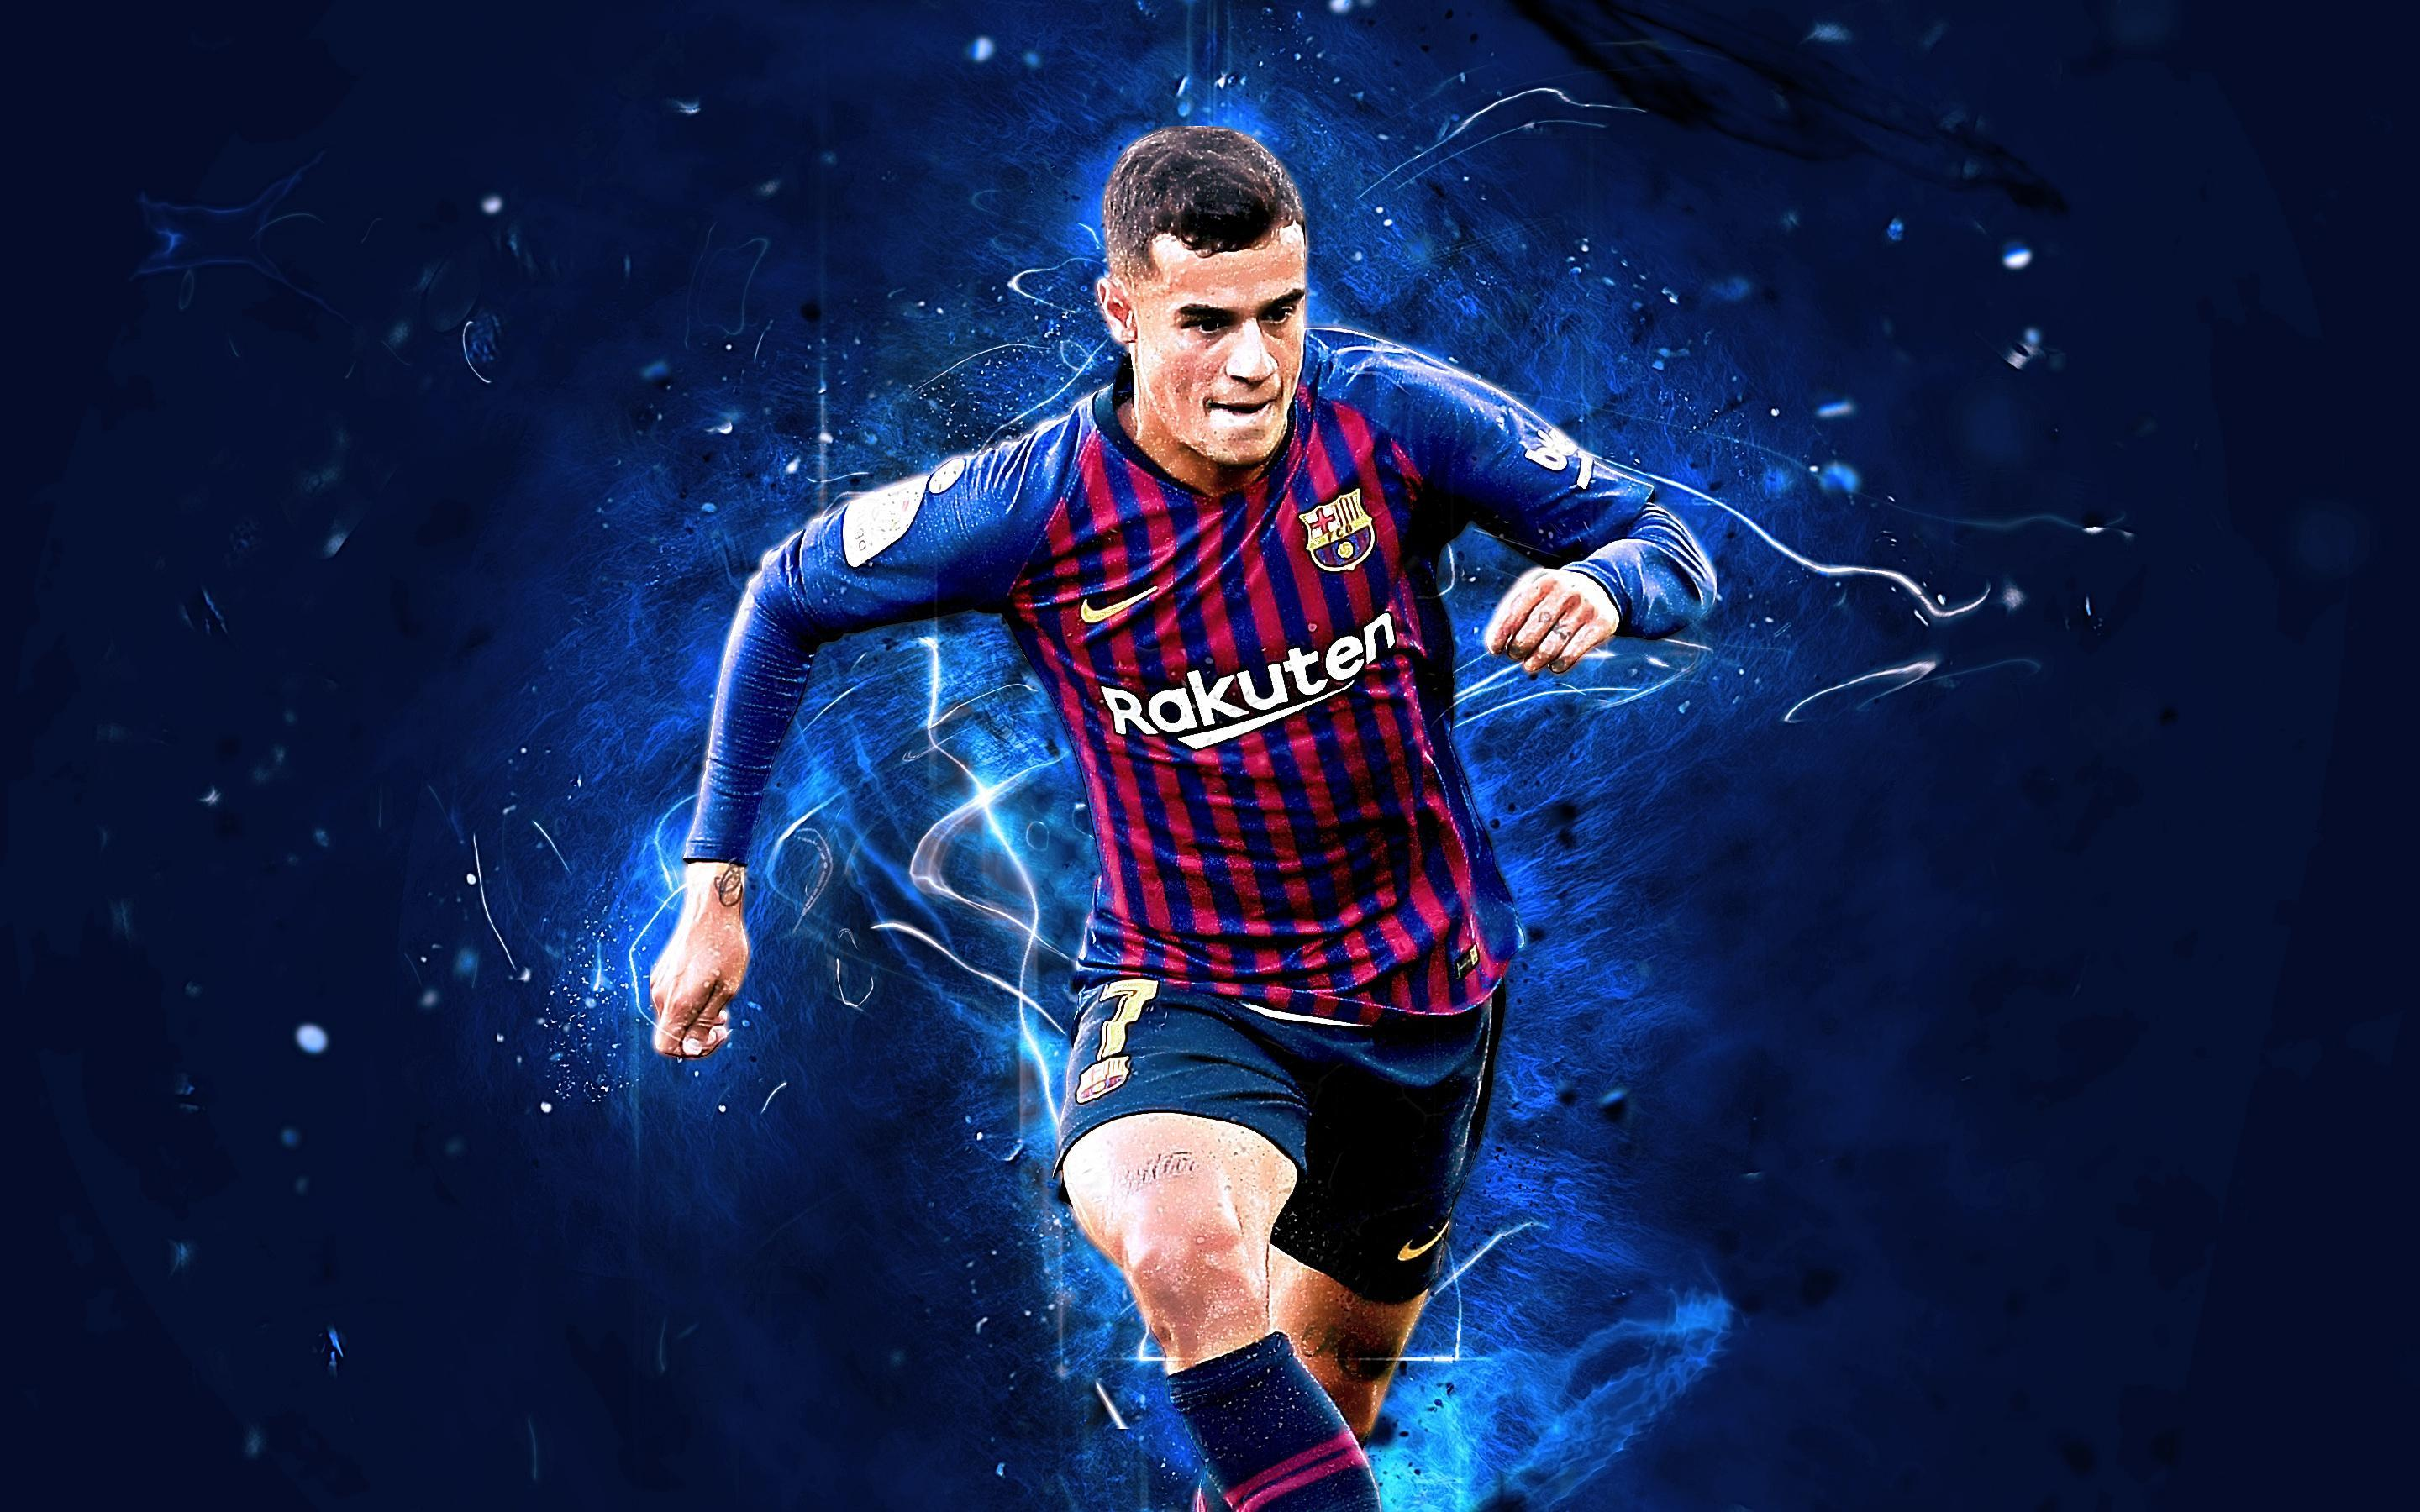 Messi Hd Wallpapers 4k Coutinho 2019 Wallpapers Wallpaper Cave